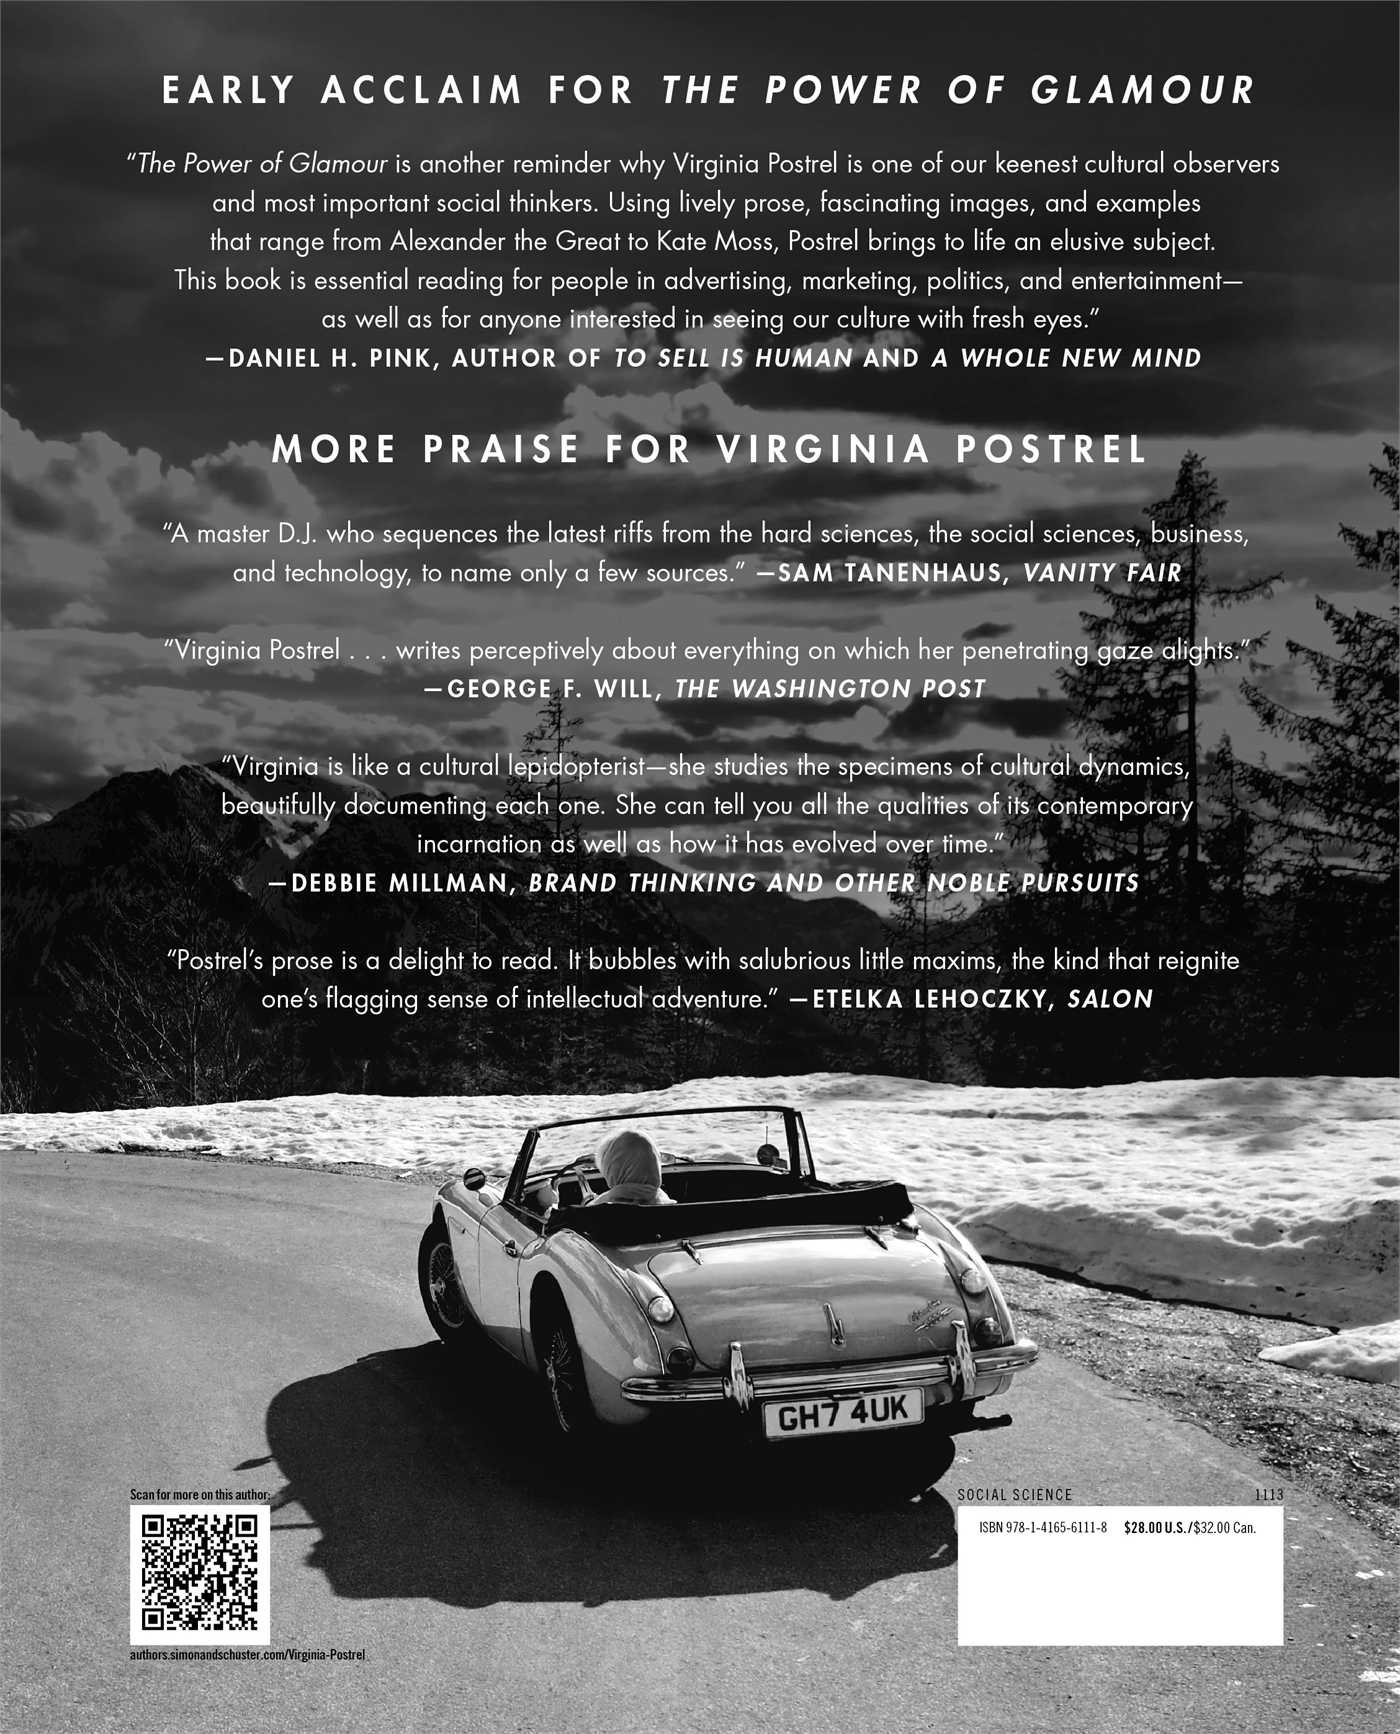 the power of glamour longing and the art of visual persuasion the power of glamour longing and the art of visual persuasion virginia postrel 9781416561118 com books